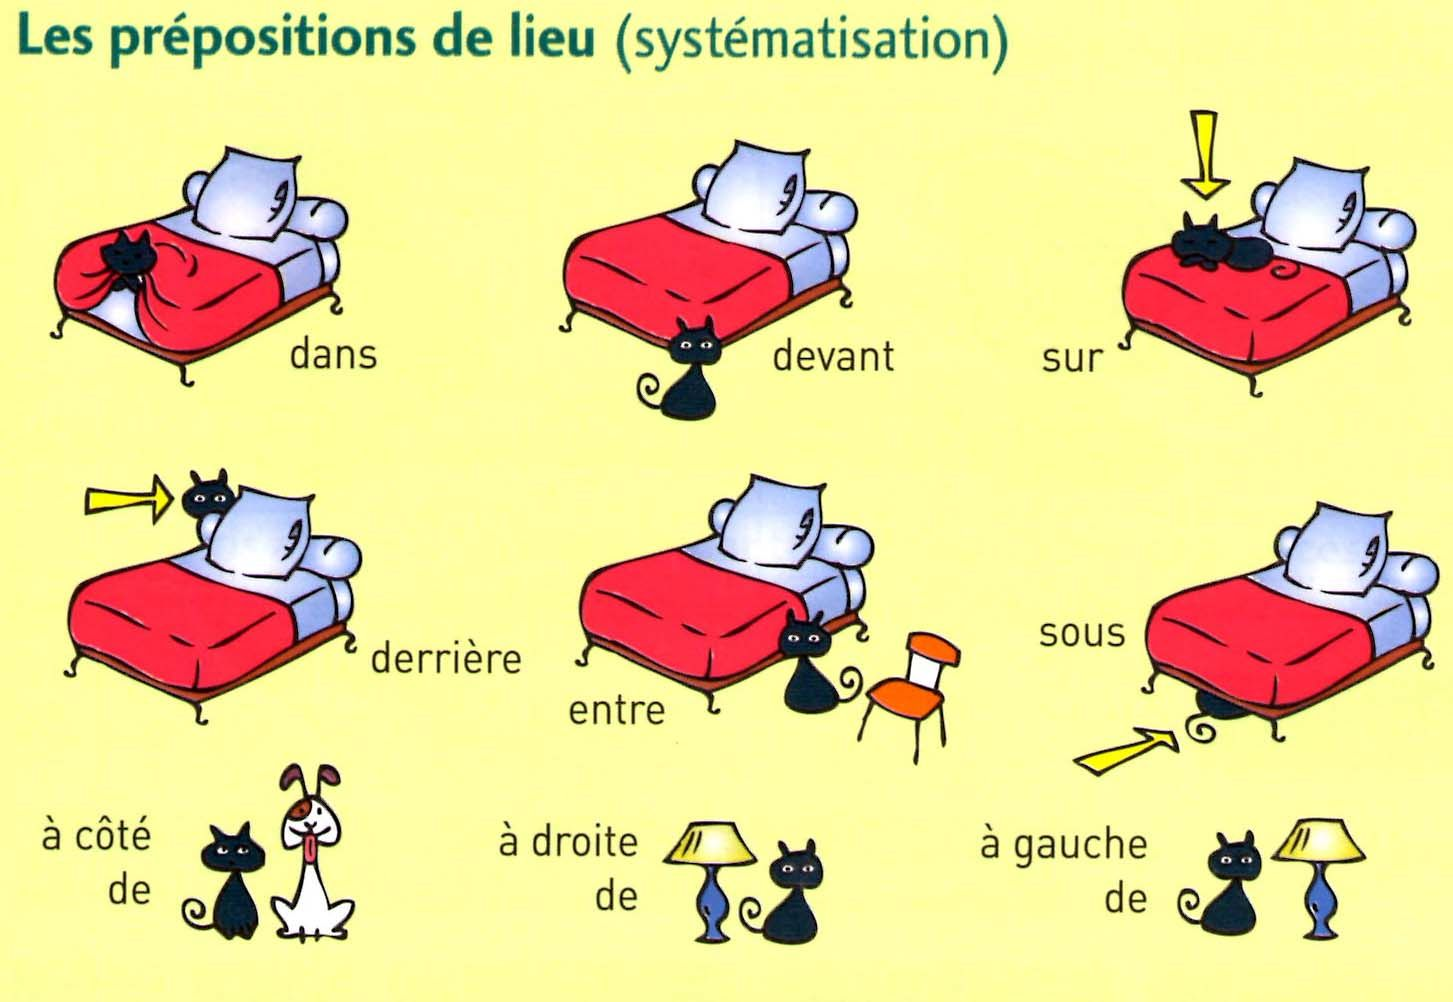 pr positions de lieu french prepositions language french beginners schoolfy. Black Bedroom Furniture Sets. Home Design Ideas